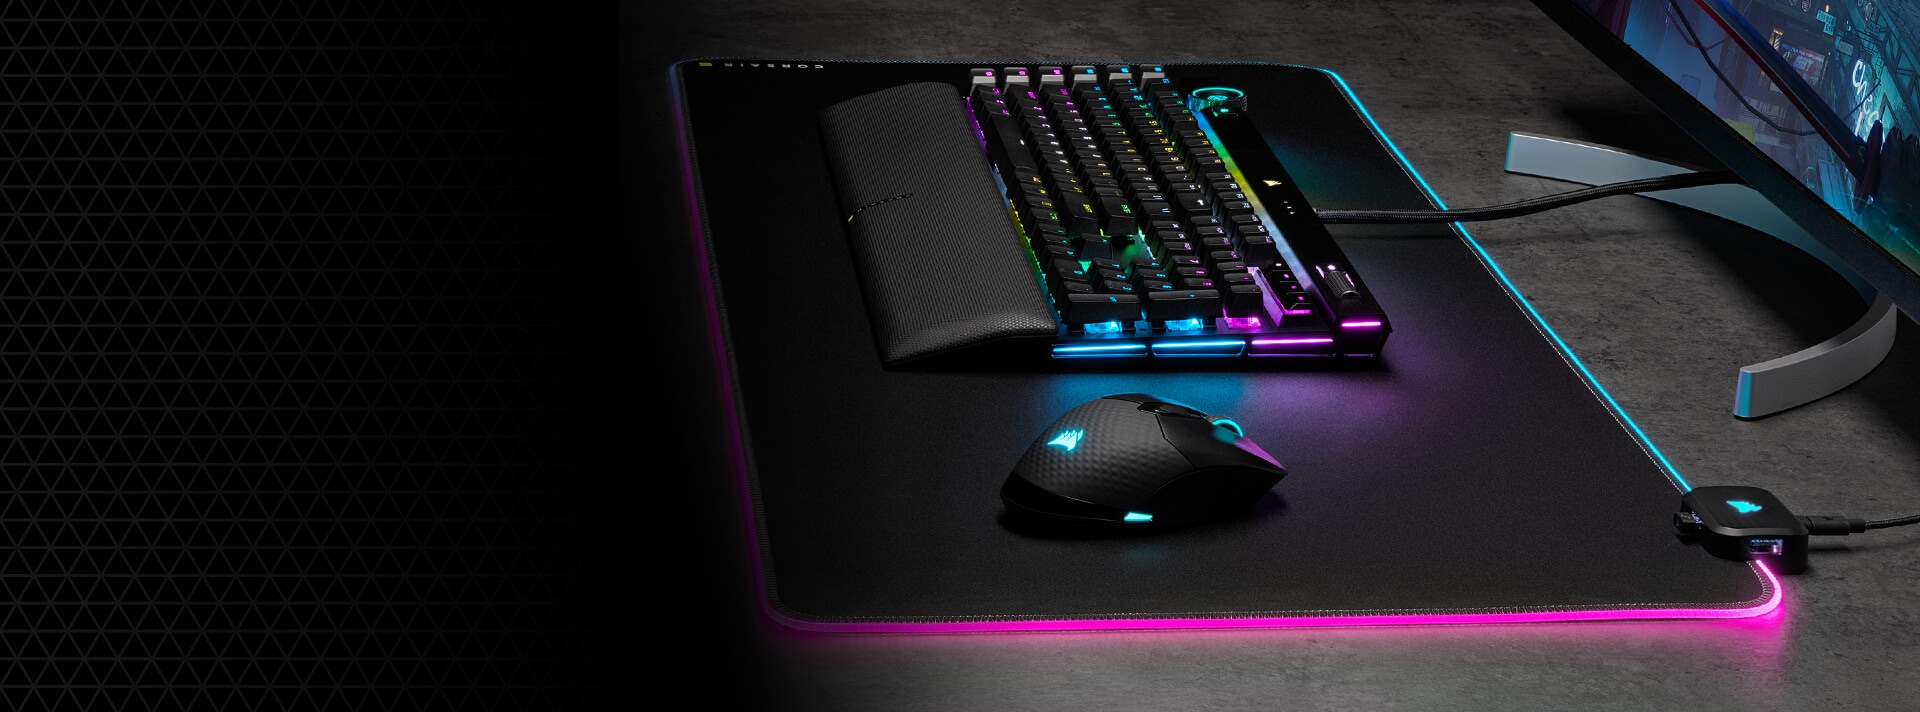 CORSAIR GAMING MOUSE PADS